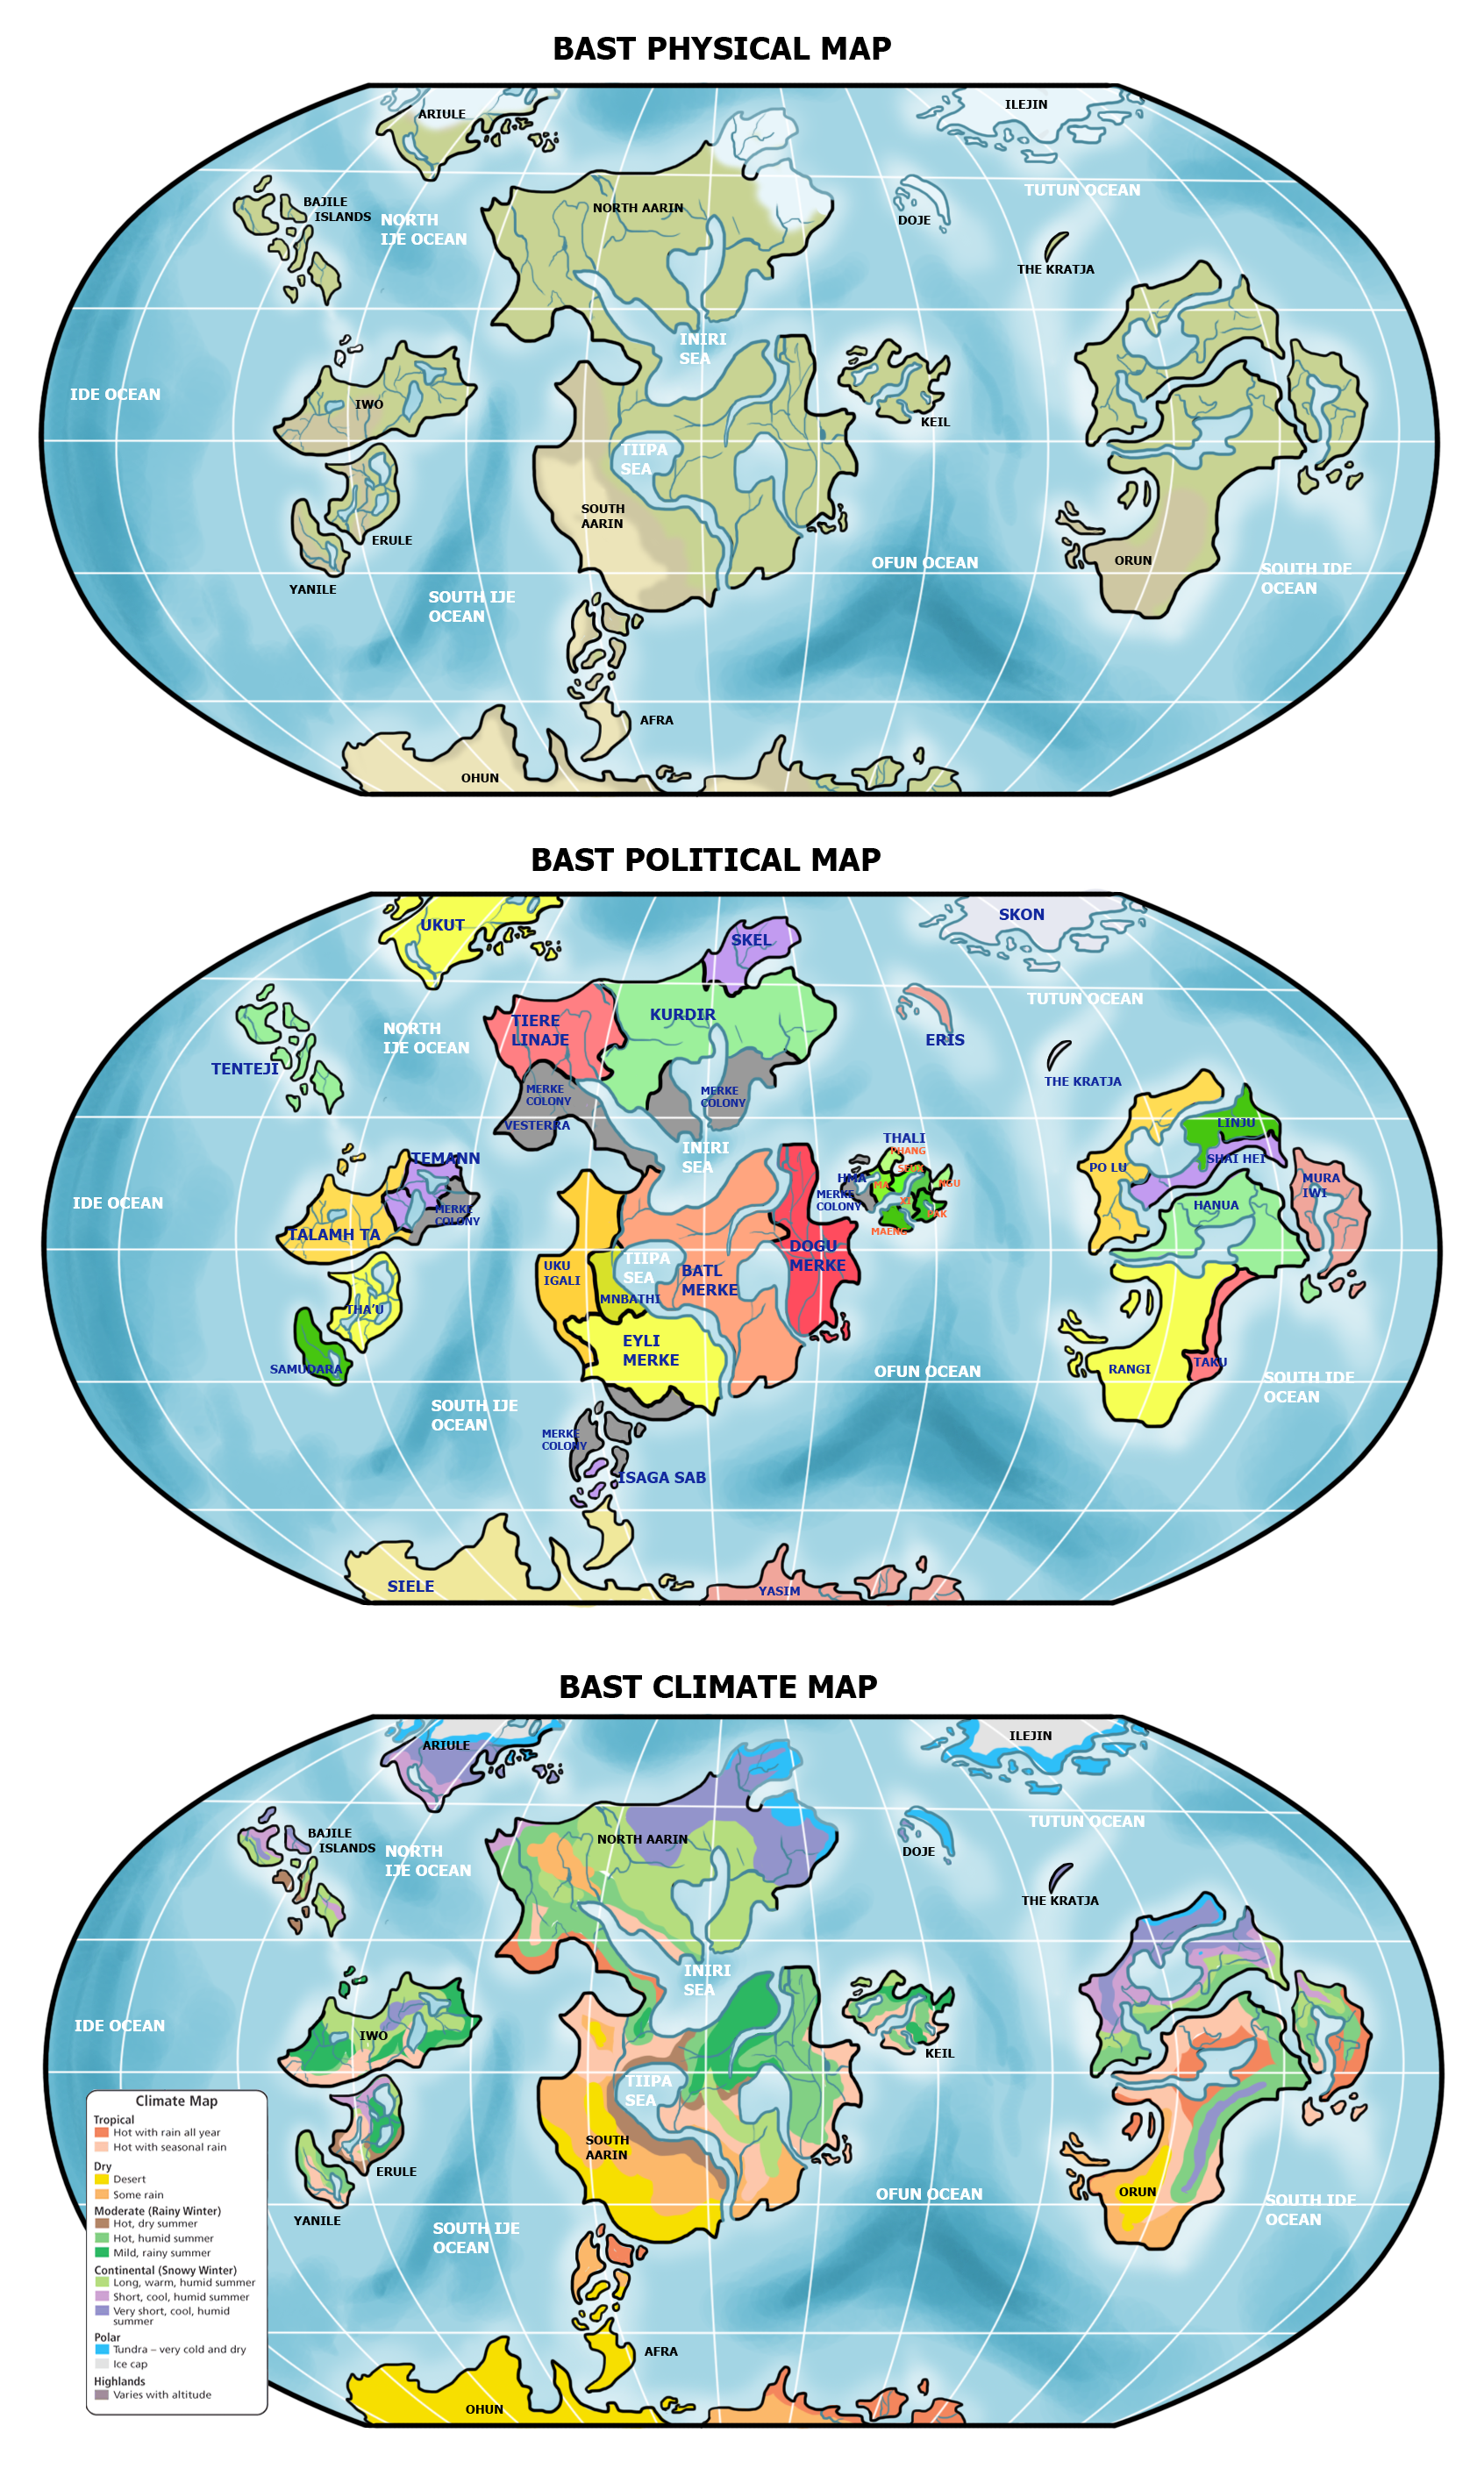 Gt bast world map by snakes on a plane on deviantart gt bast world map by snakes on a plane gumiabroncs Gallery